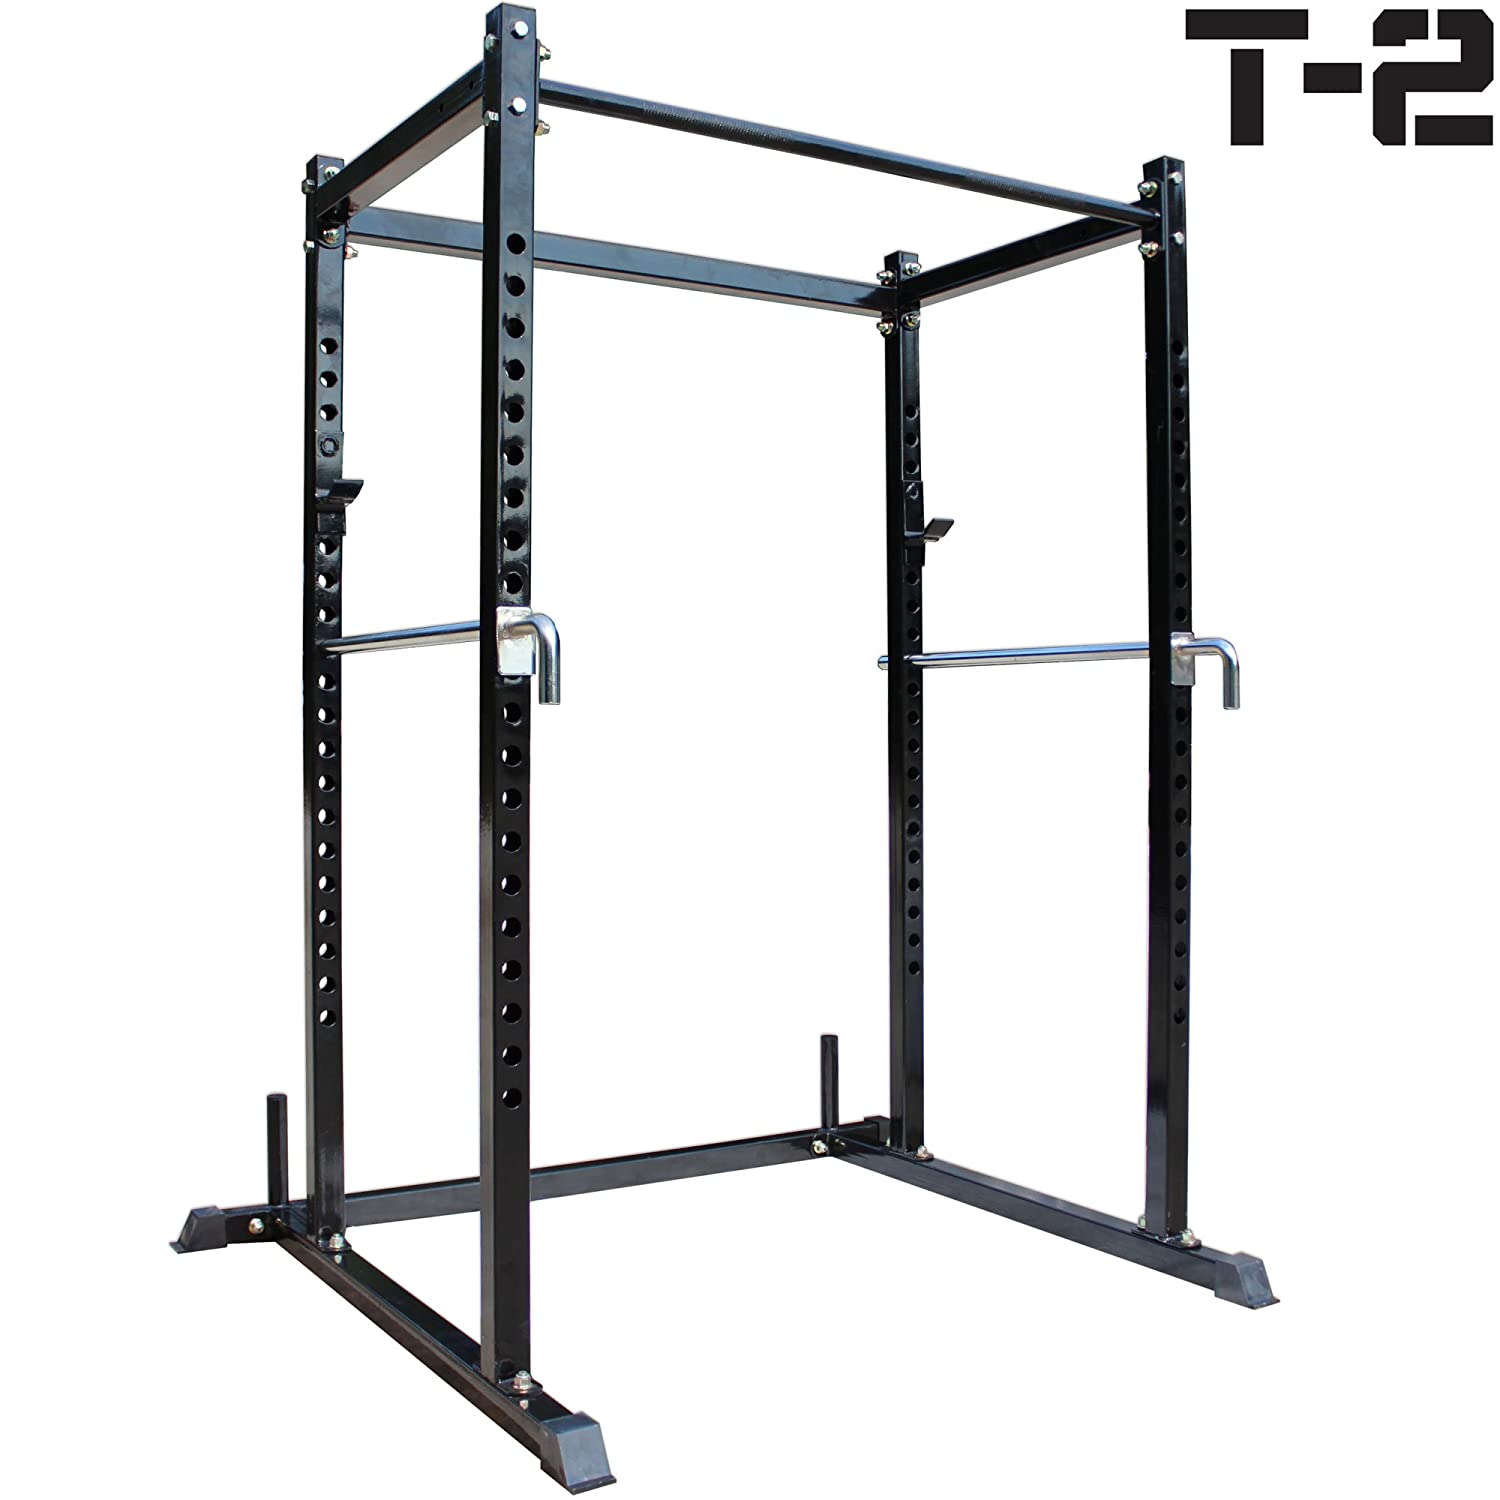 Titan T2 Rack Review